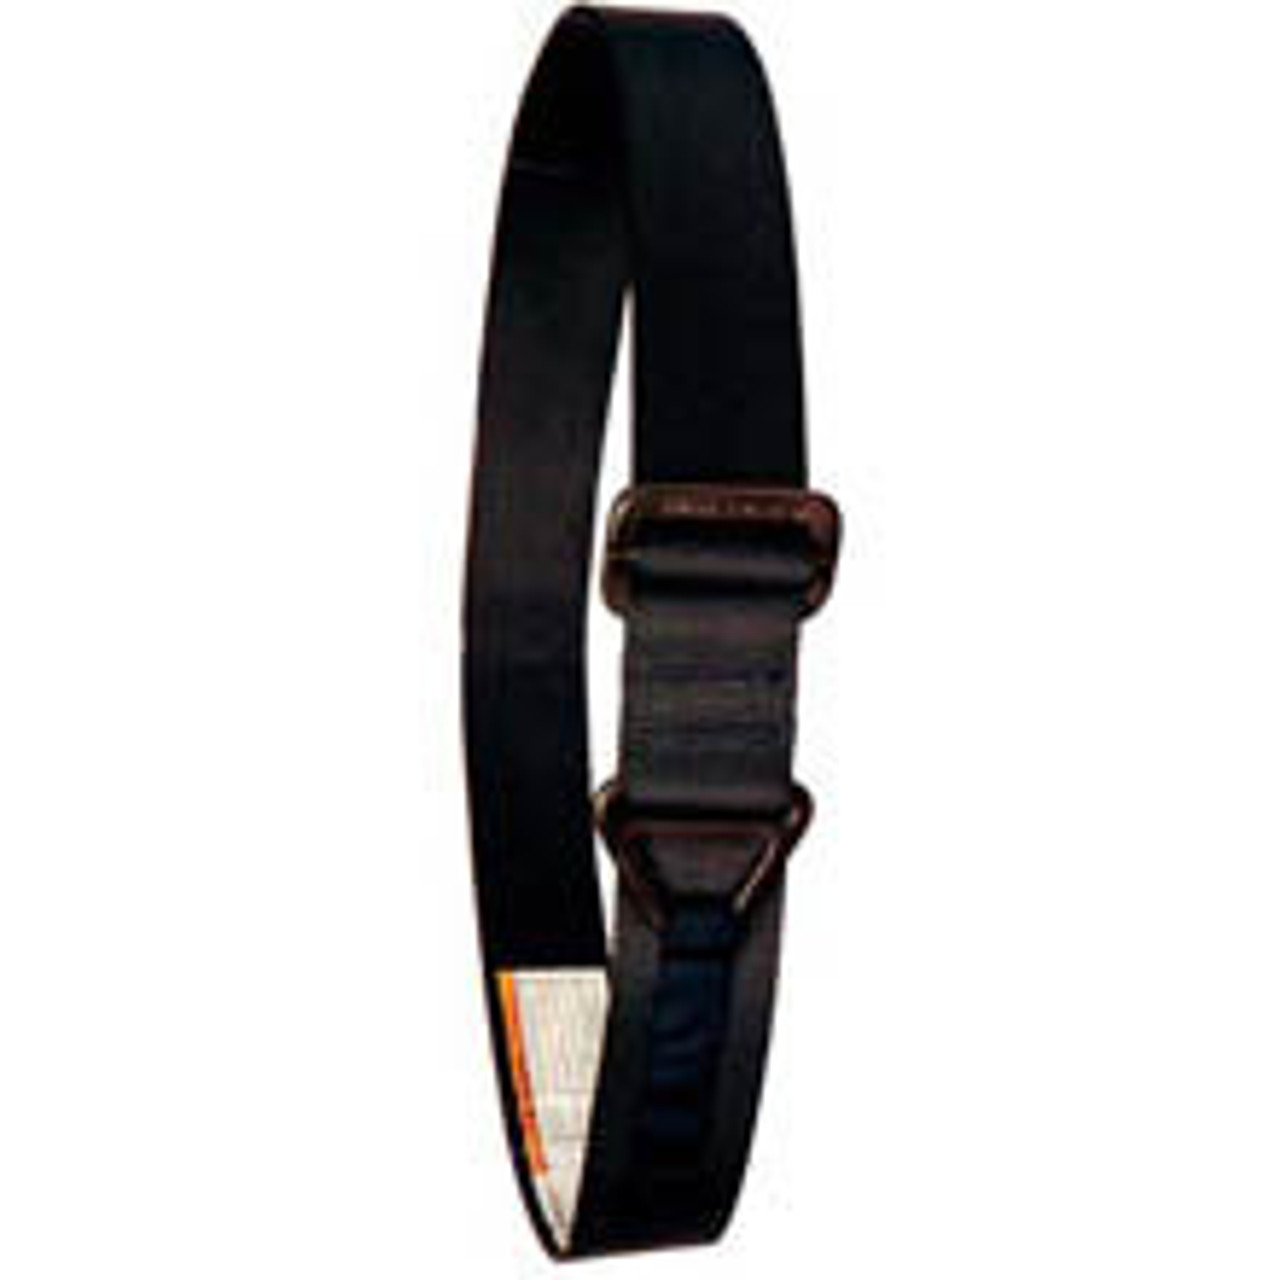 PMI Uniform Belt with Hook and Loop